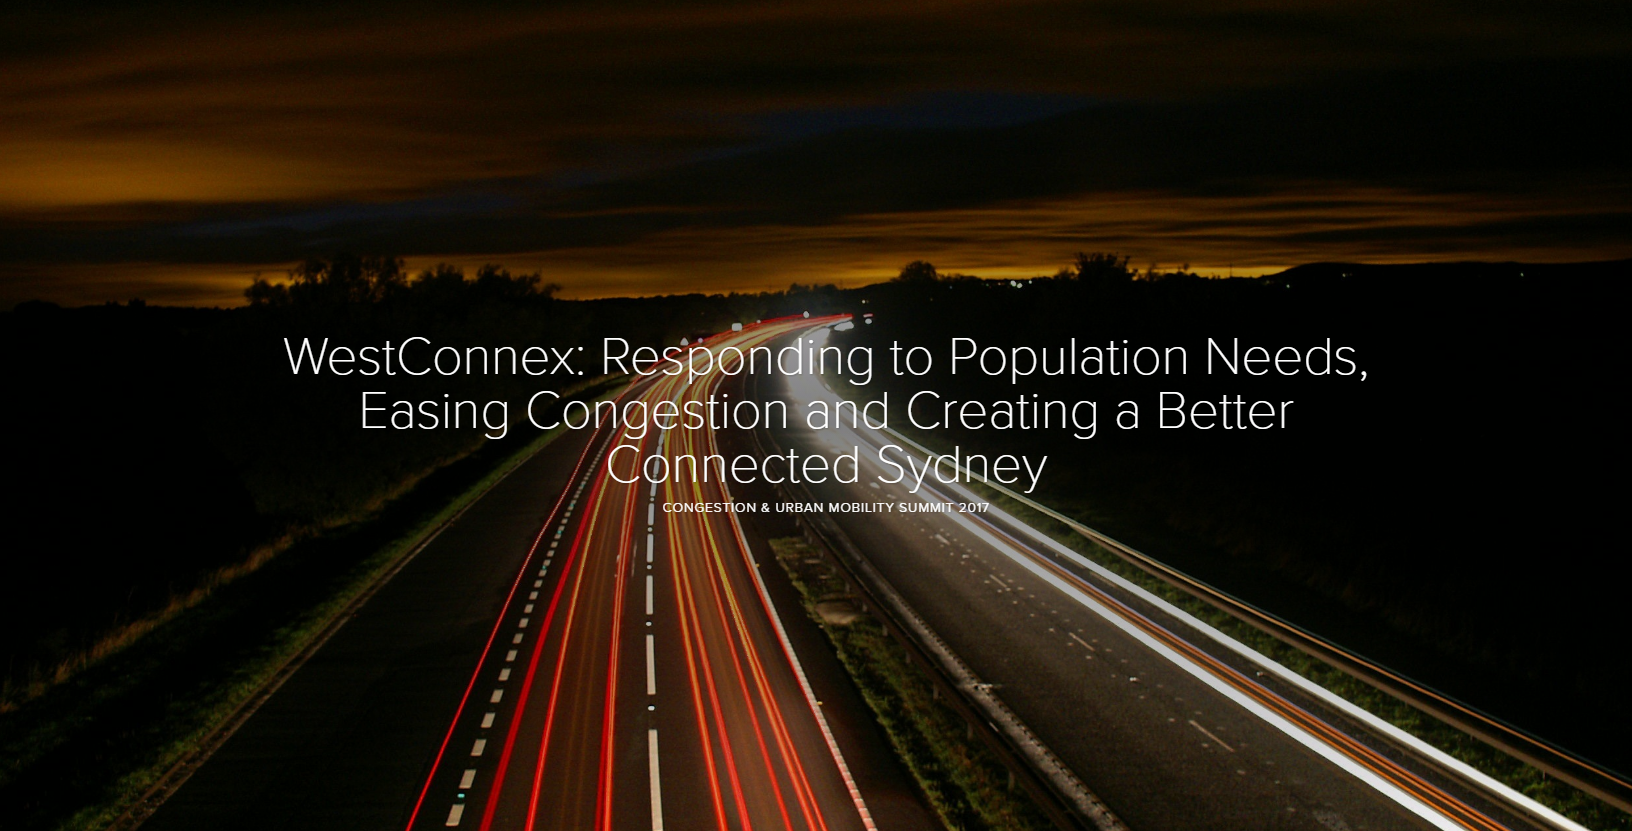 WestConnex: Responding to Population Needs, Easing Congestion and Creating a Better Connected Sydney